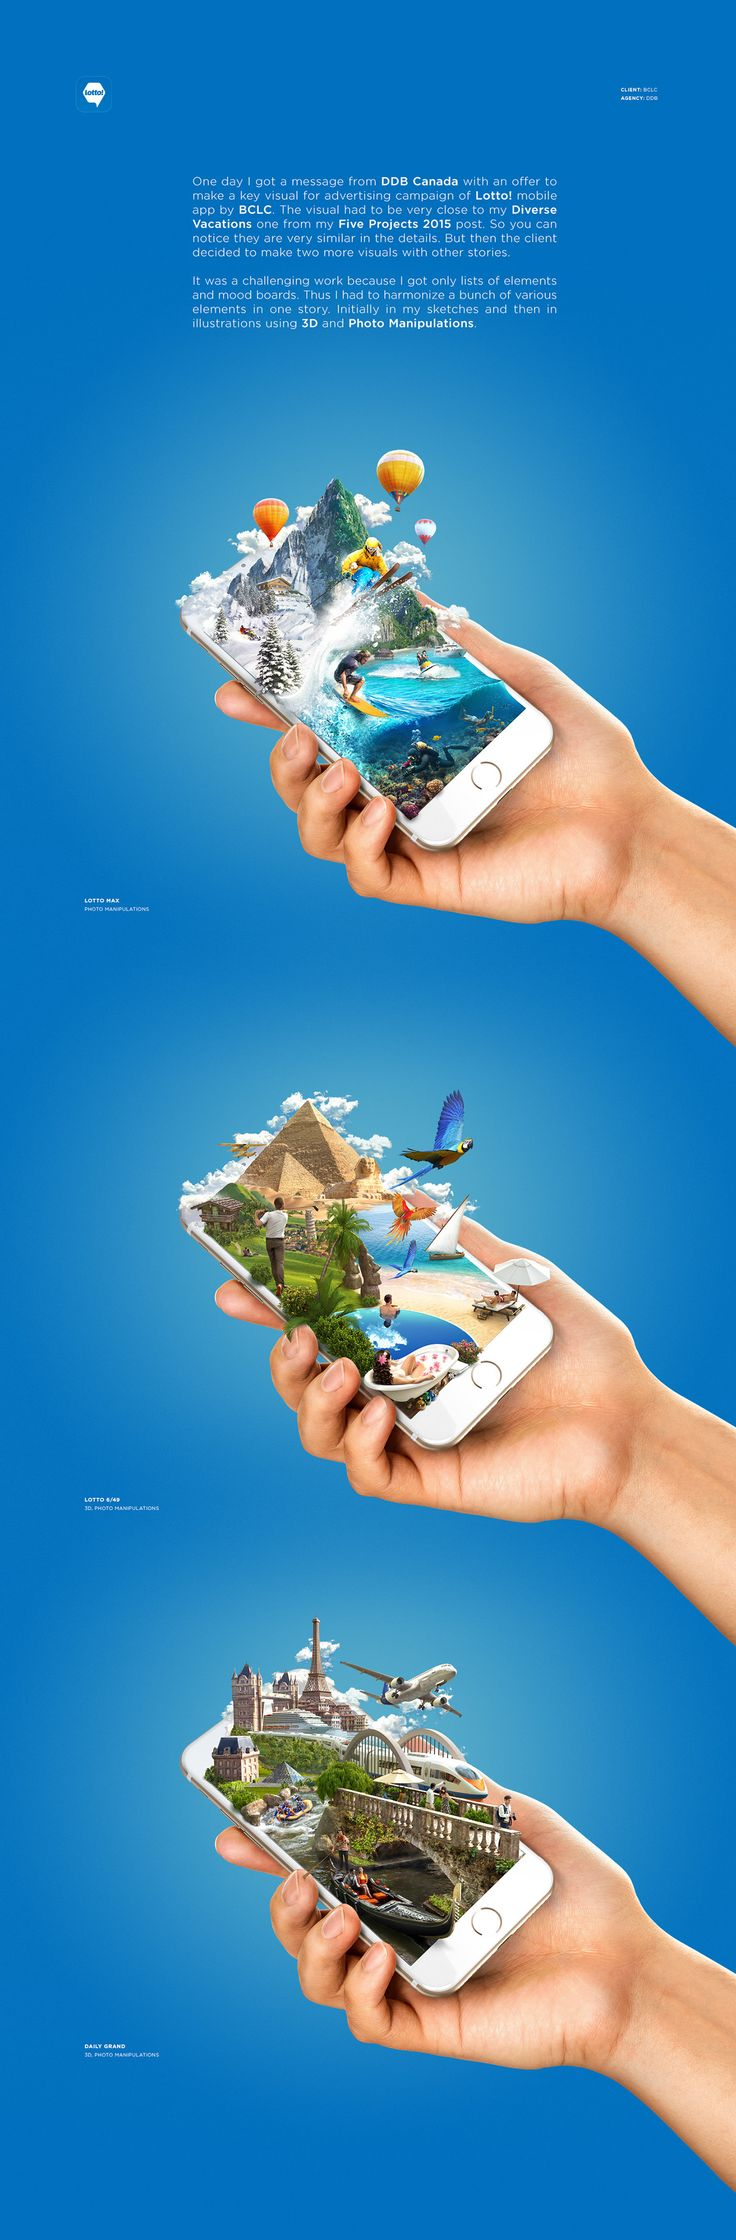 best photo manipulation images photo editing  one day i got a message from ddb an offer to make a key visual for advertising campaign of lotto mobile app by bclc